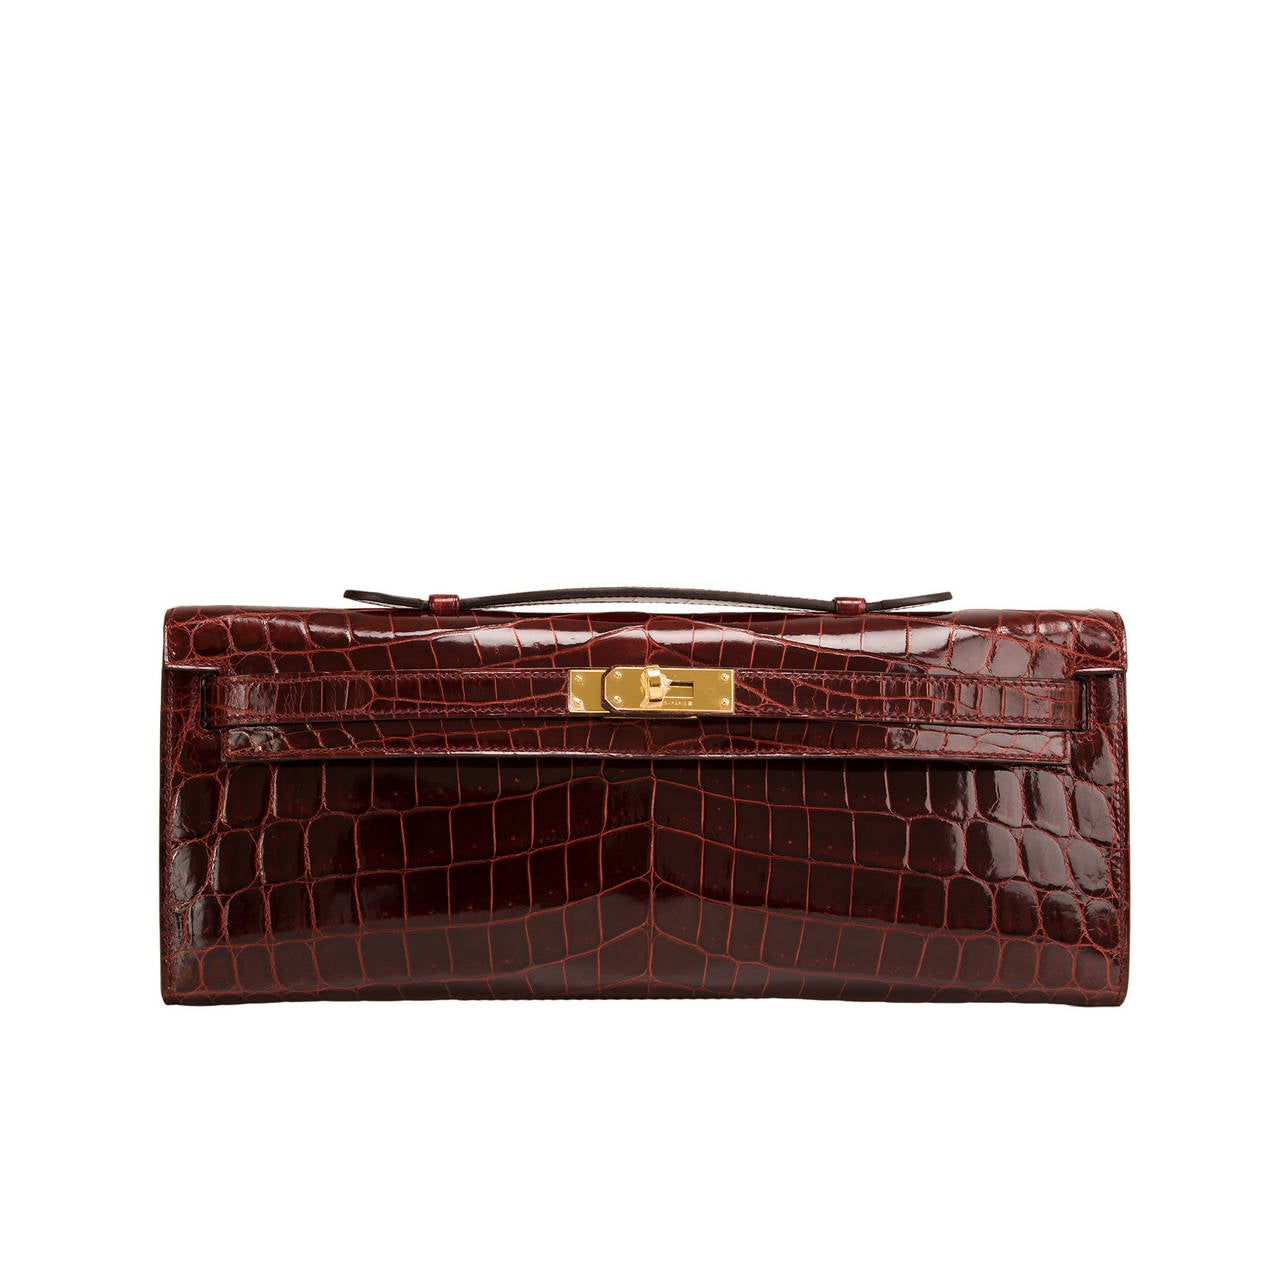 kelly hermes wallet - Vintage Herm��s Clutches - 150 For Sale at 1stdibs - Page 3